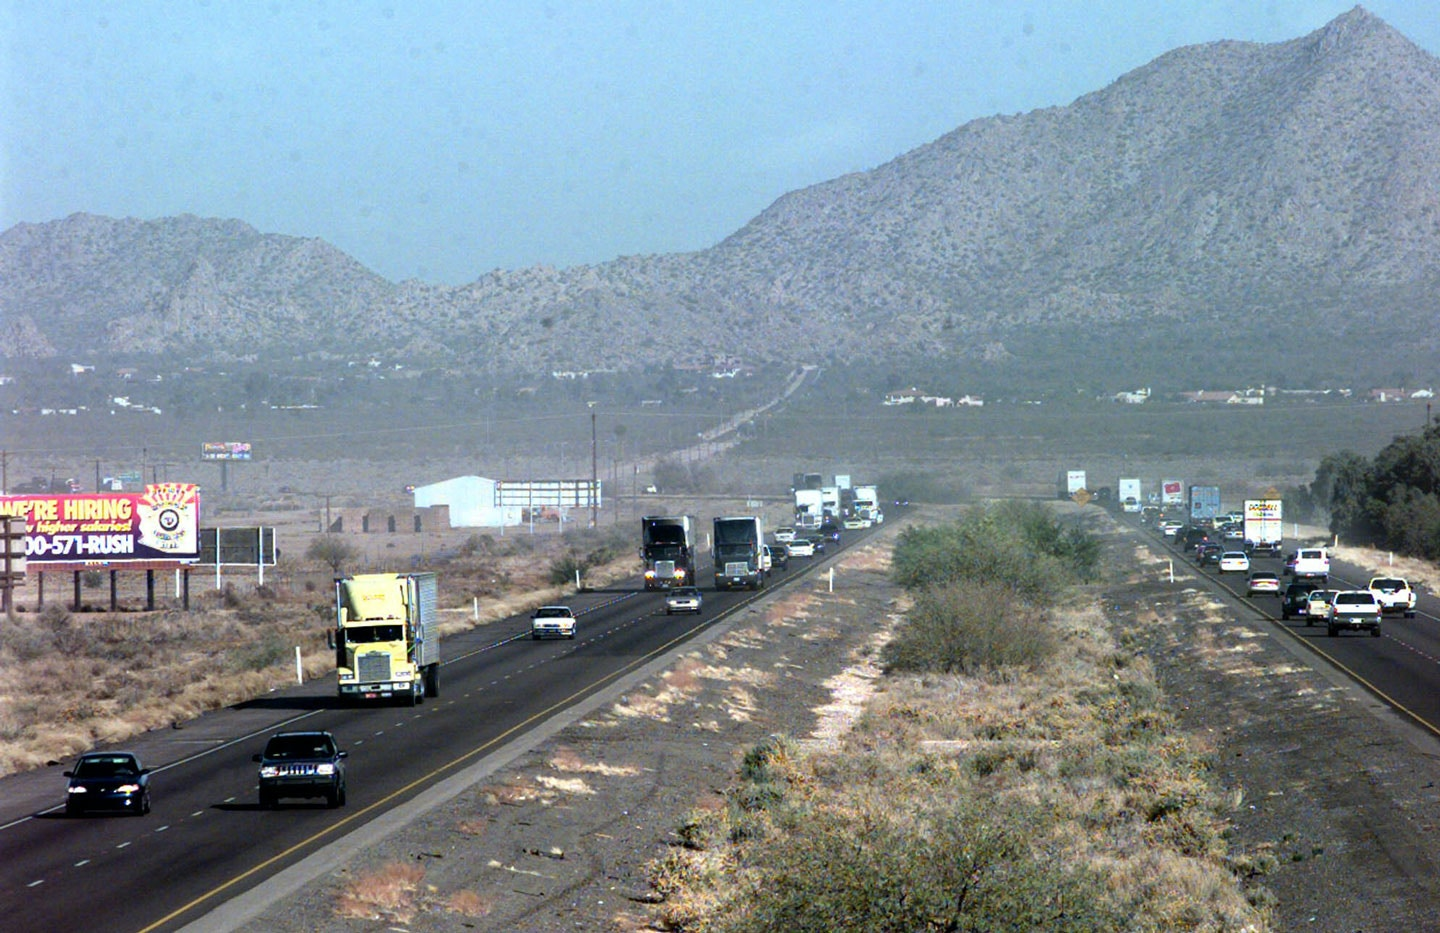 Traffic travels on Interstate 10 east of Casa Grande, Ariz., on Thursday, Dec. 23, 1999. The state Department of Transportation plans to eventually widen the interstate all the way from Phoenix to Tucson. But at least one Casa Grande businessman who relies on the highway for a living thinks the plan may become outdated, even before construction could begin. (AP Photo/Francisco Medina)